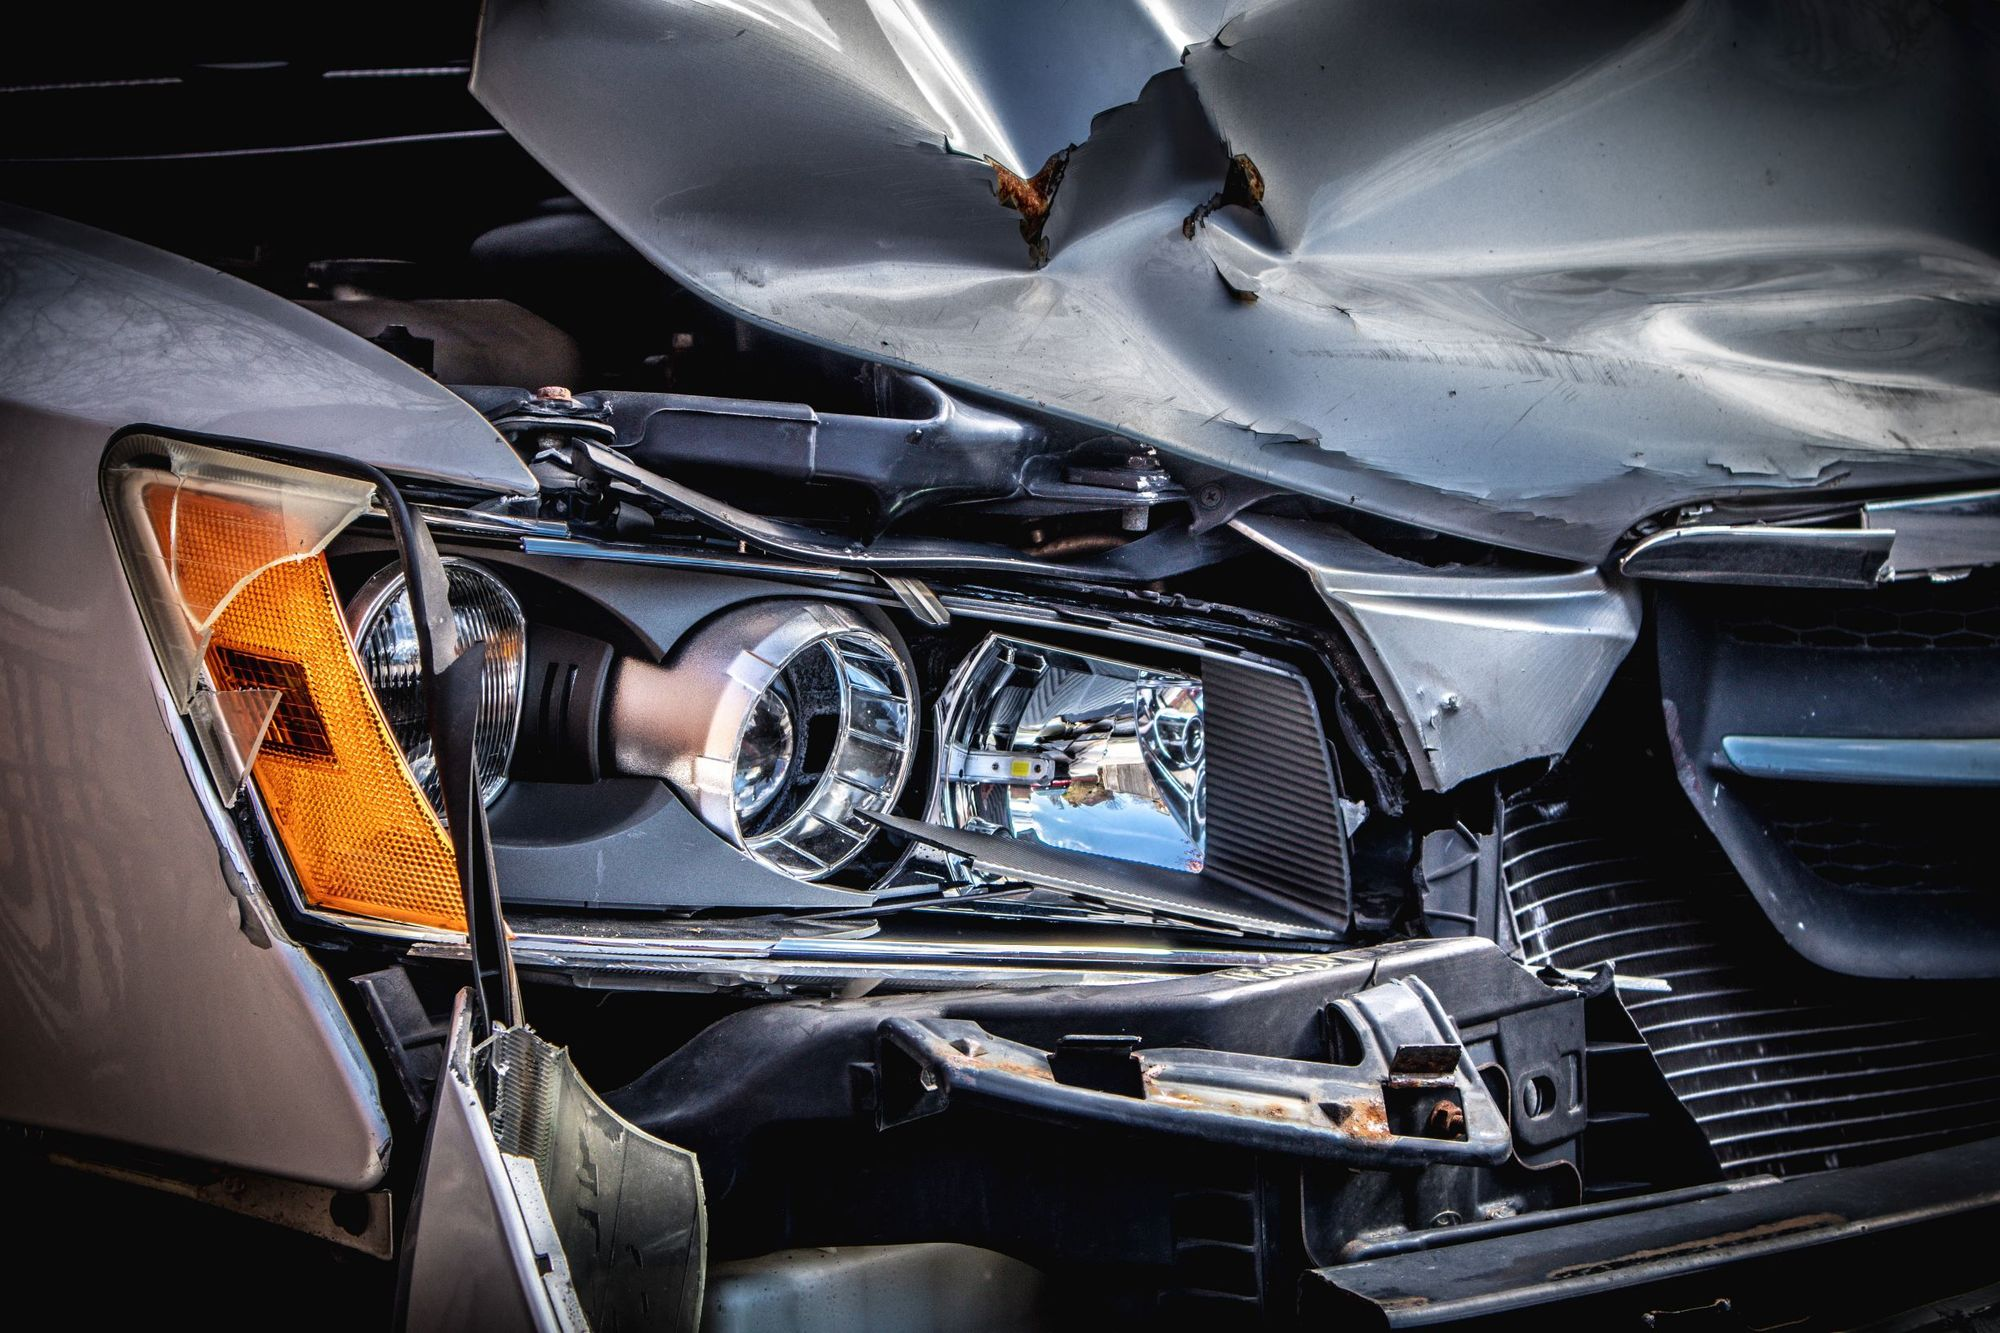 Photo of a damaged car after an accident